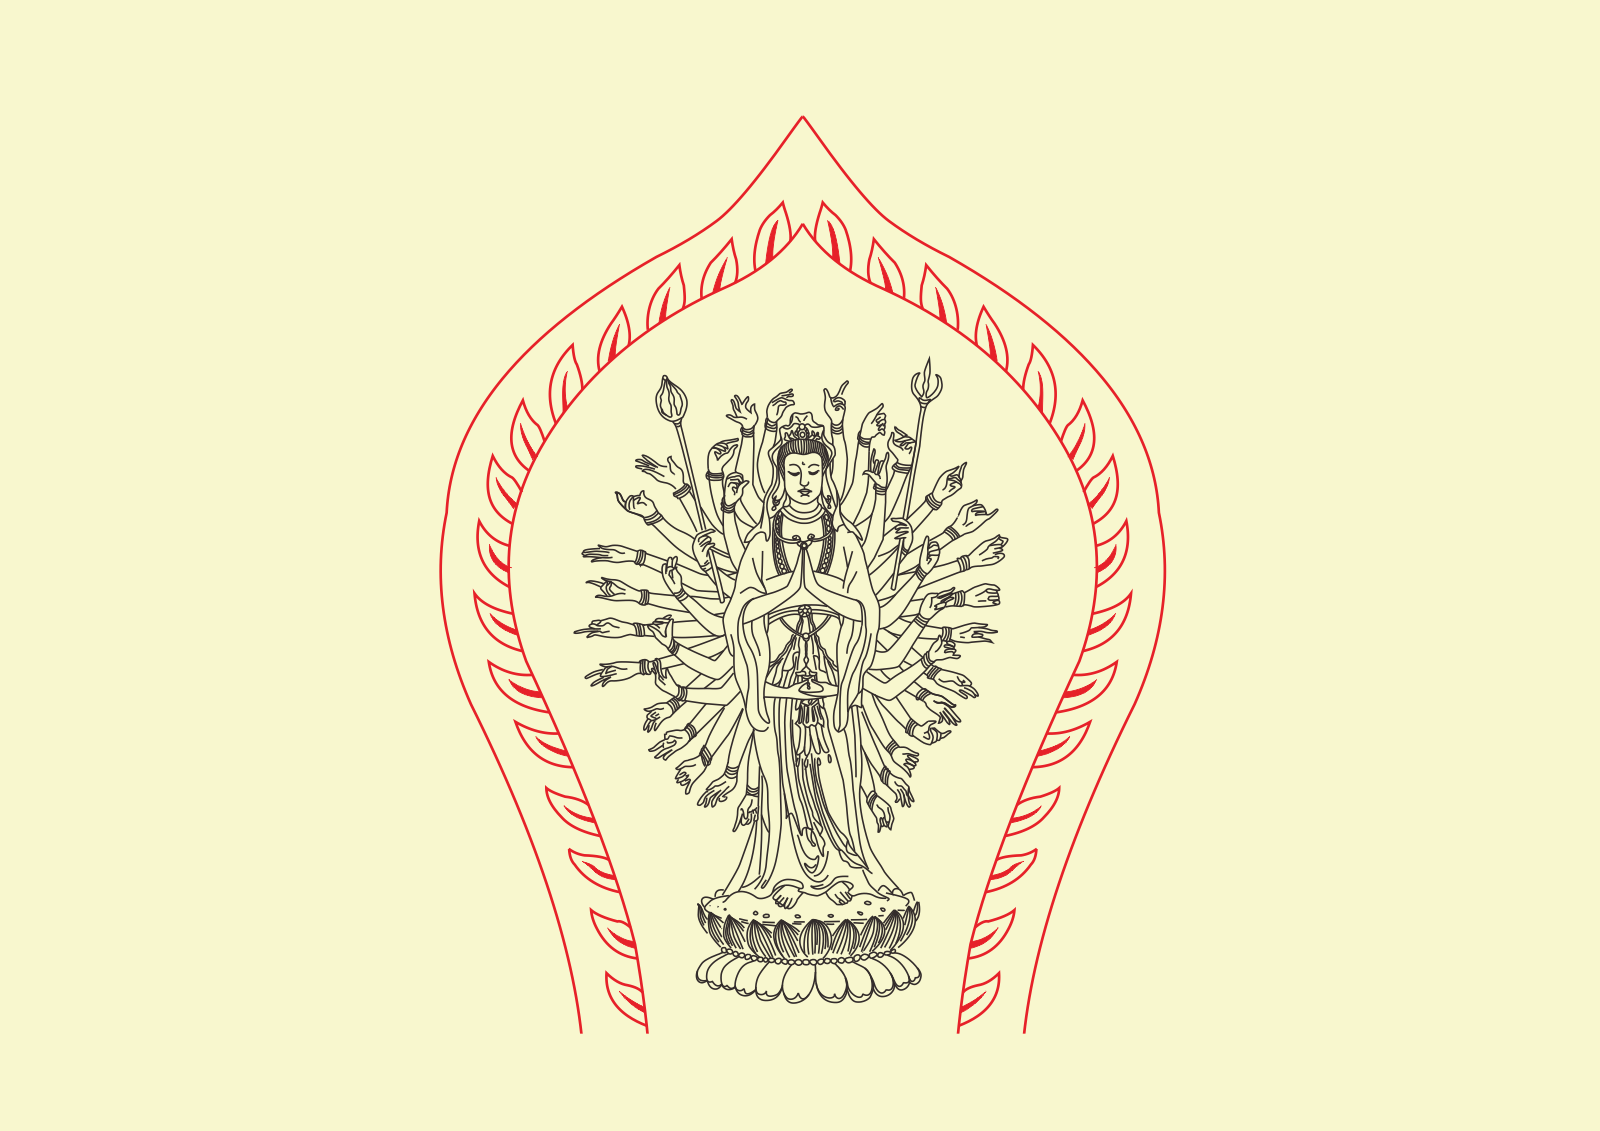 chinesefontdesign.com 2017 02 04 20 07 28 Guanyin bodhisattva(Thousand Hand Kwan yin) Chinese buddhist images Vectors CDR Free Download